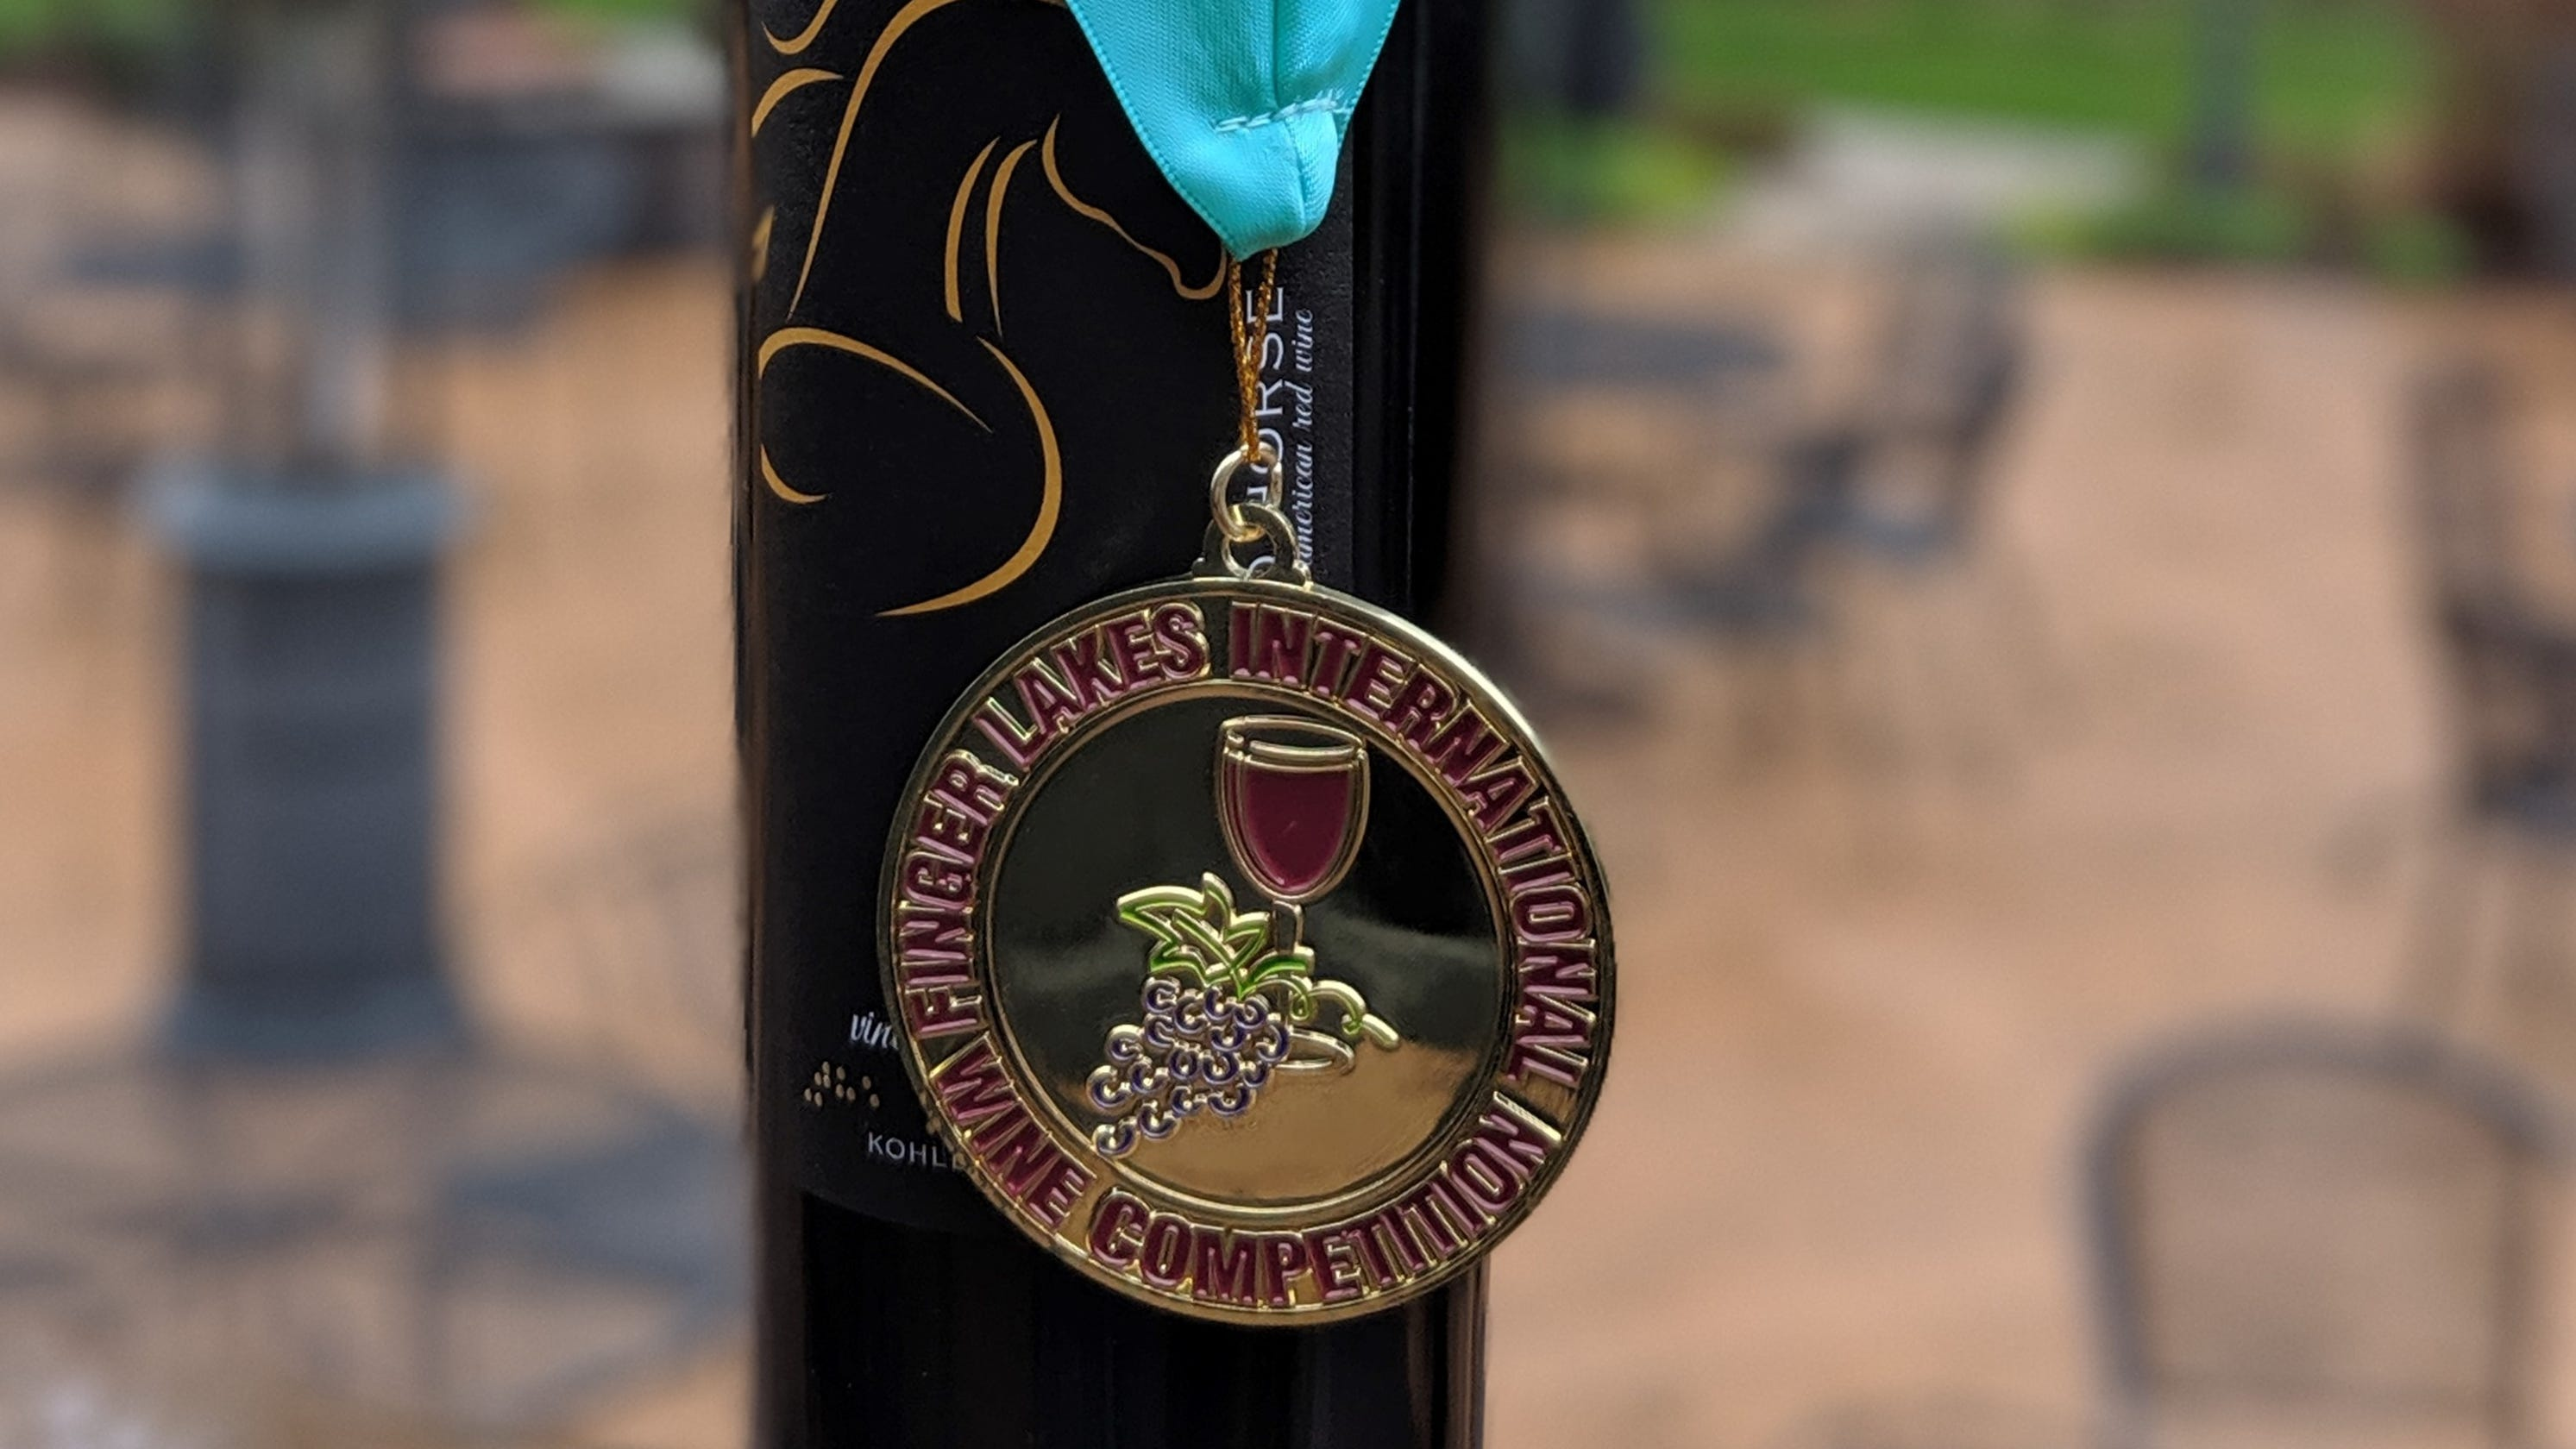 The Blind Horse In Kohler Wins Double Gold For Wine At